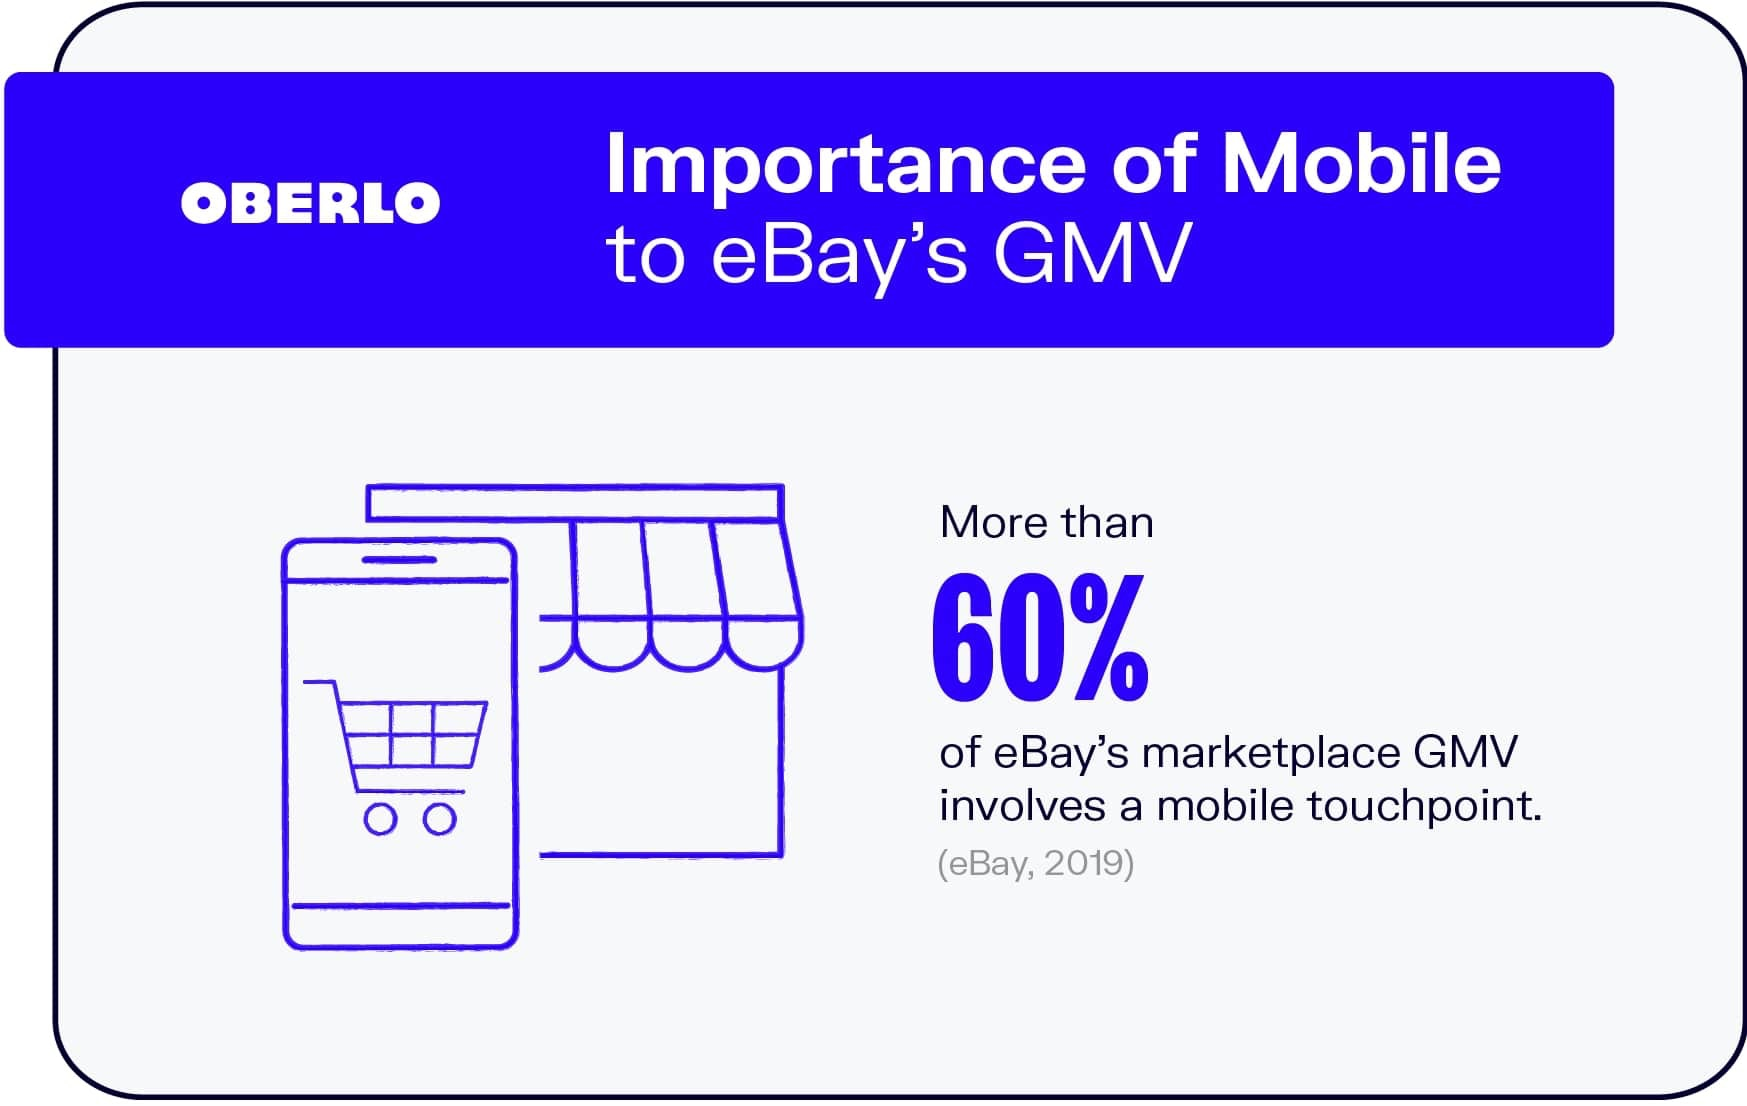 Importance of Mobile to eBay's GMV